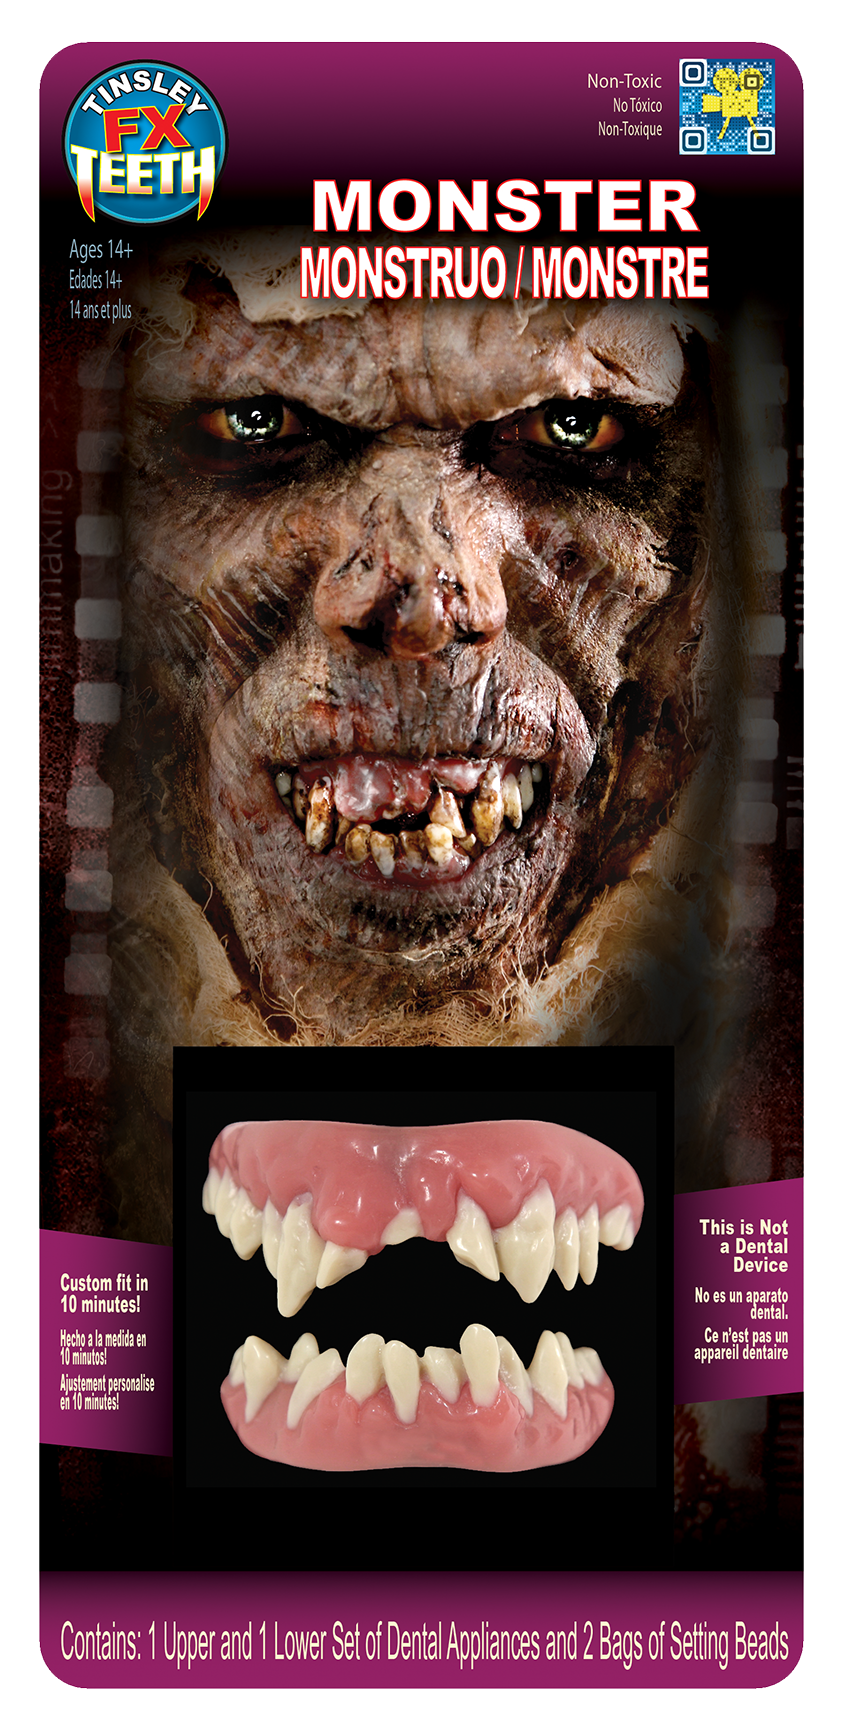 Application/Makeup by Hannah Sherer for Tinsley Transfers Merchandise/Social Media. Teeth Design by Tinsley Transfers. Prosthetic sculpt by Tinsley Transfers.